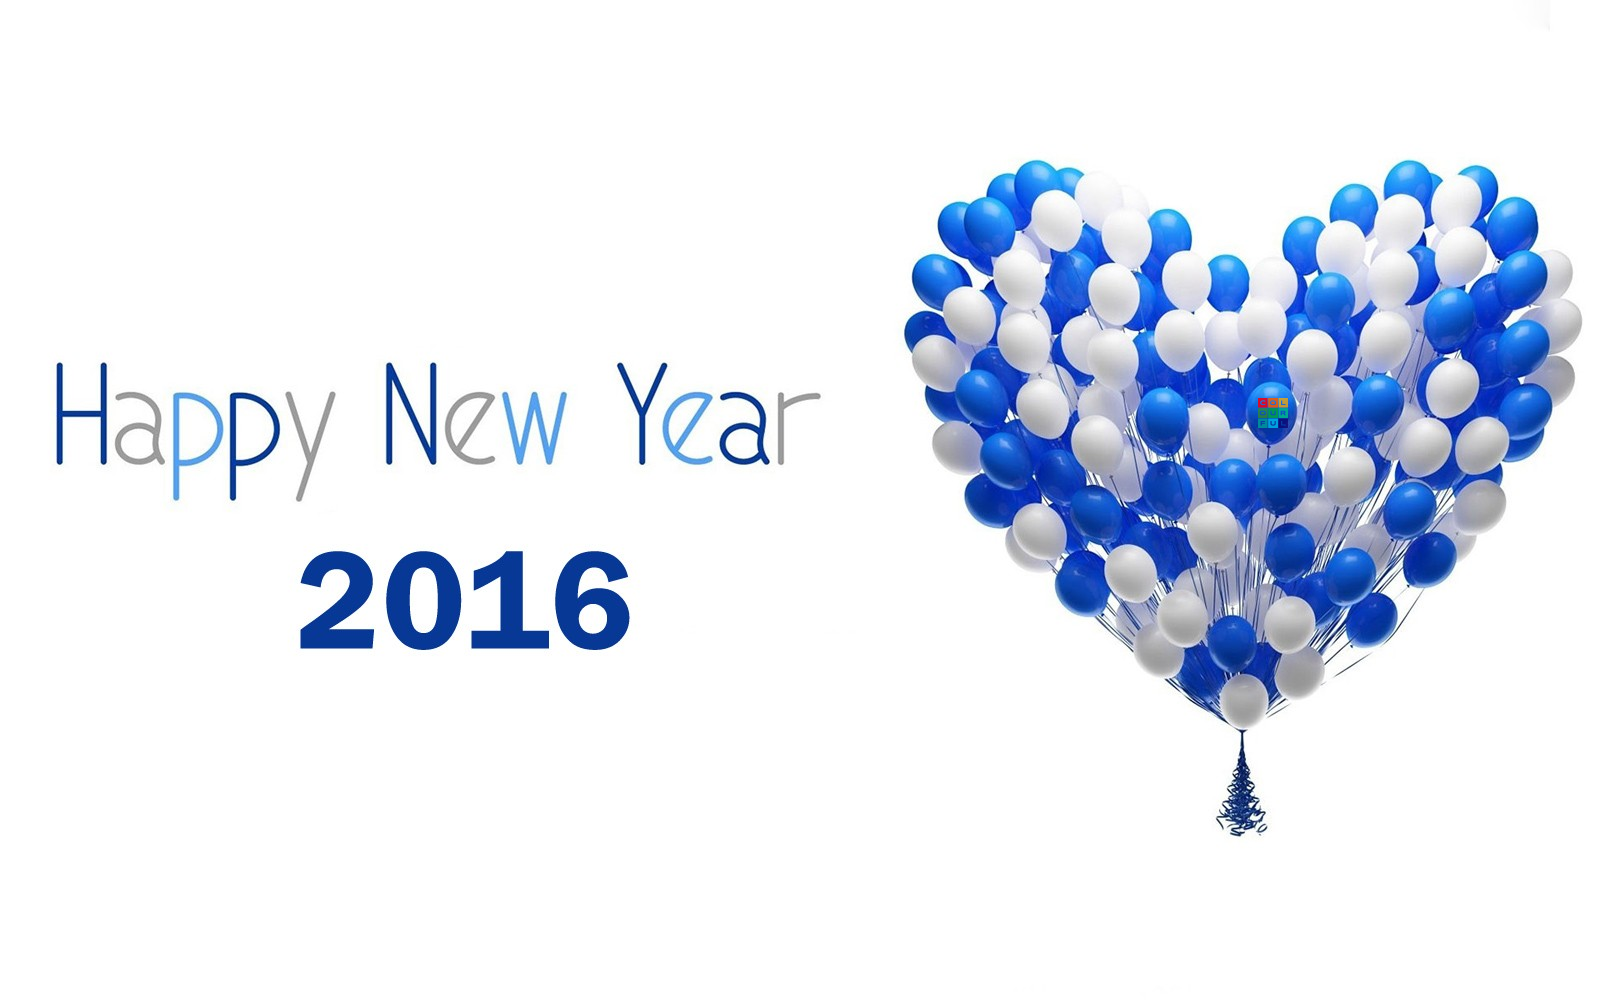 We wish you and yours a happy, healthy, peaceful and prosperous 2016